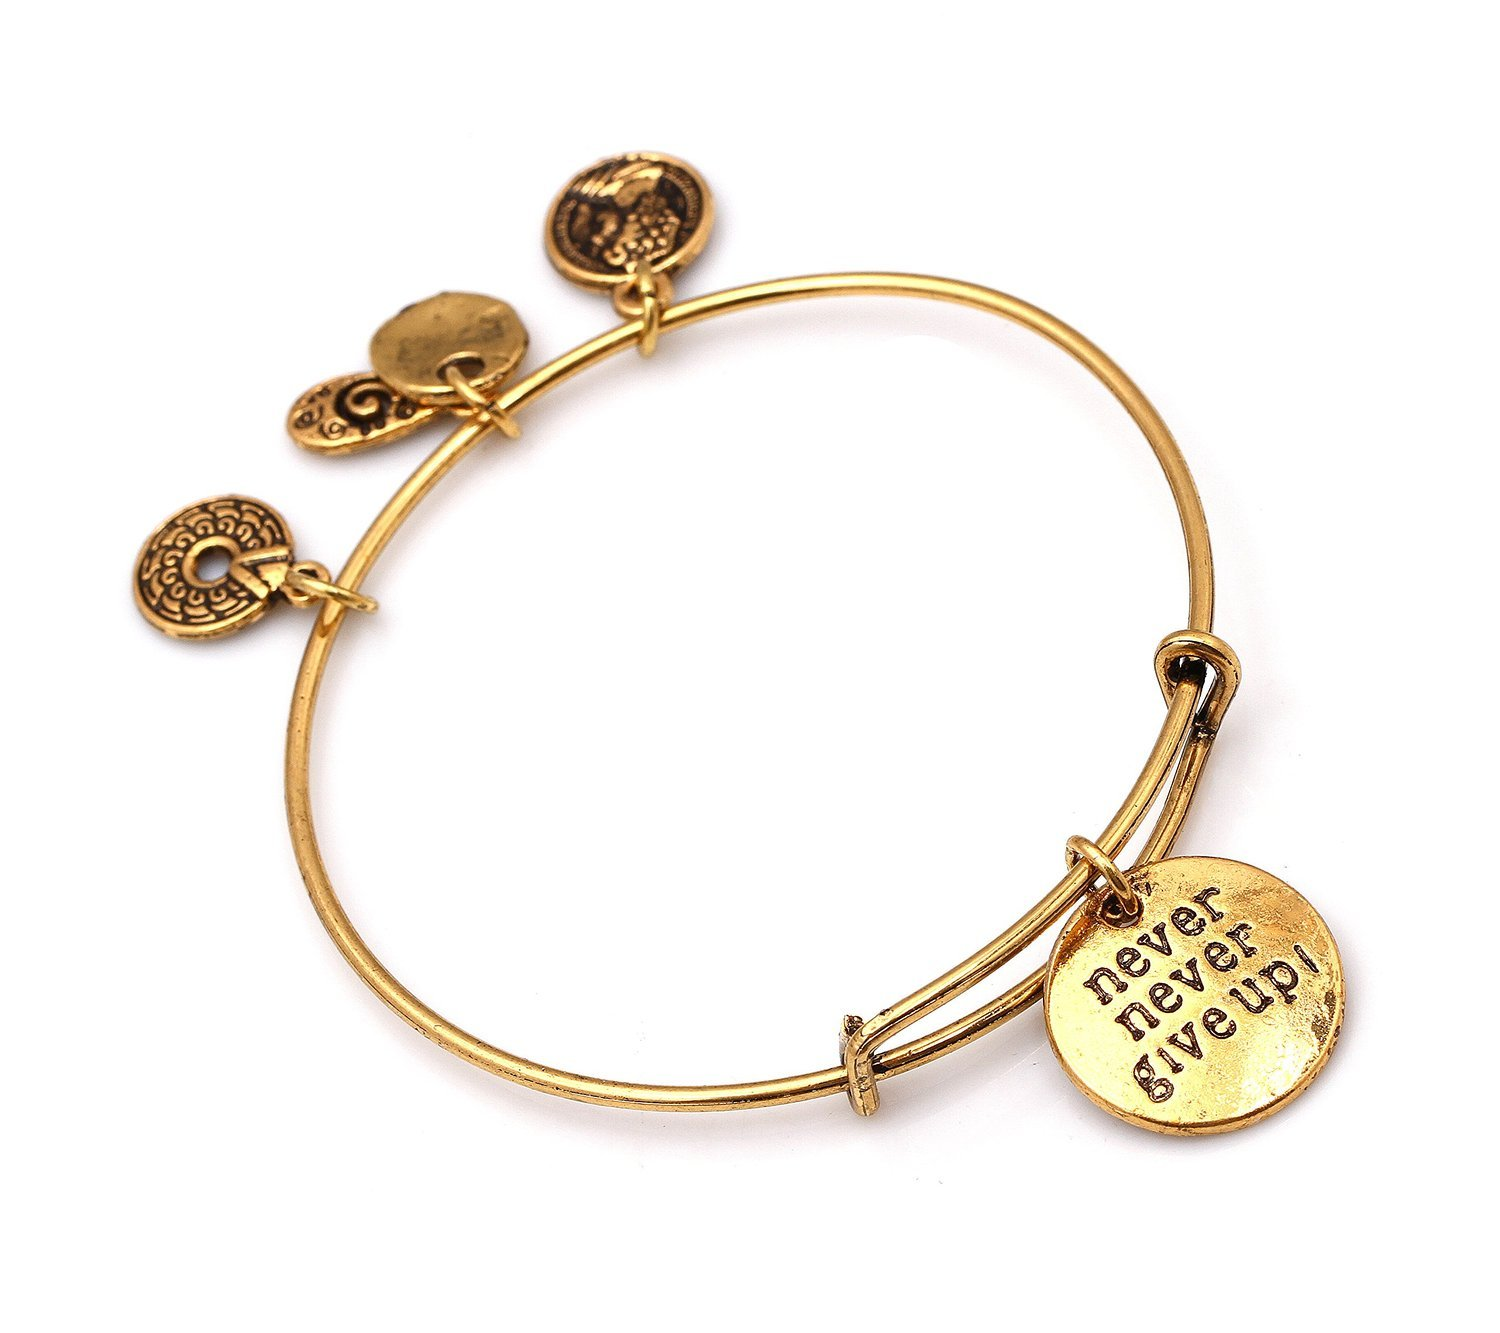 """Antique Gold Tone Expandable Wire Bangle Bracelet with """"Never Give Up!"""" Pendant"""